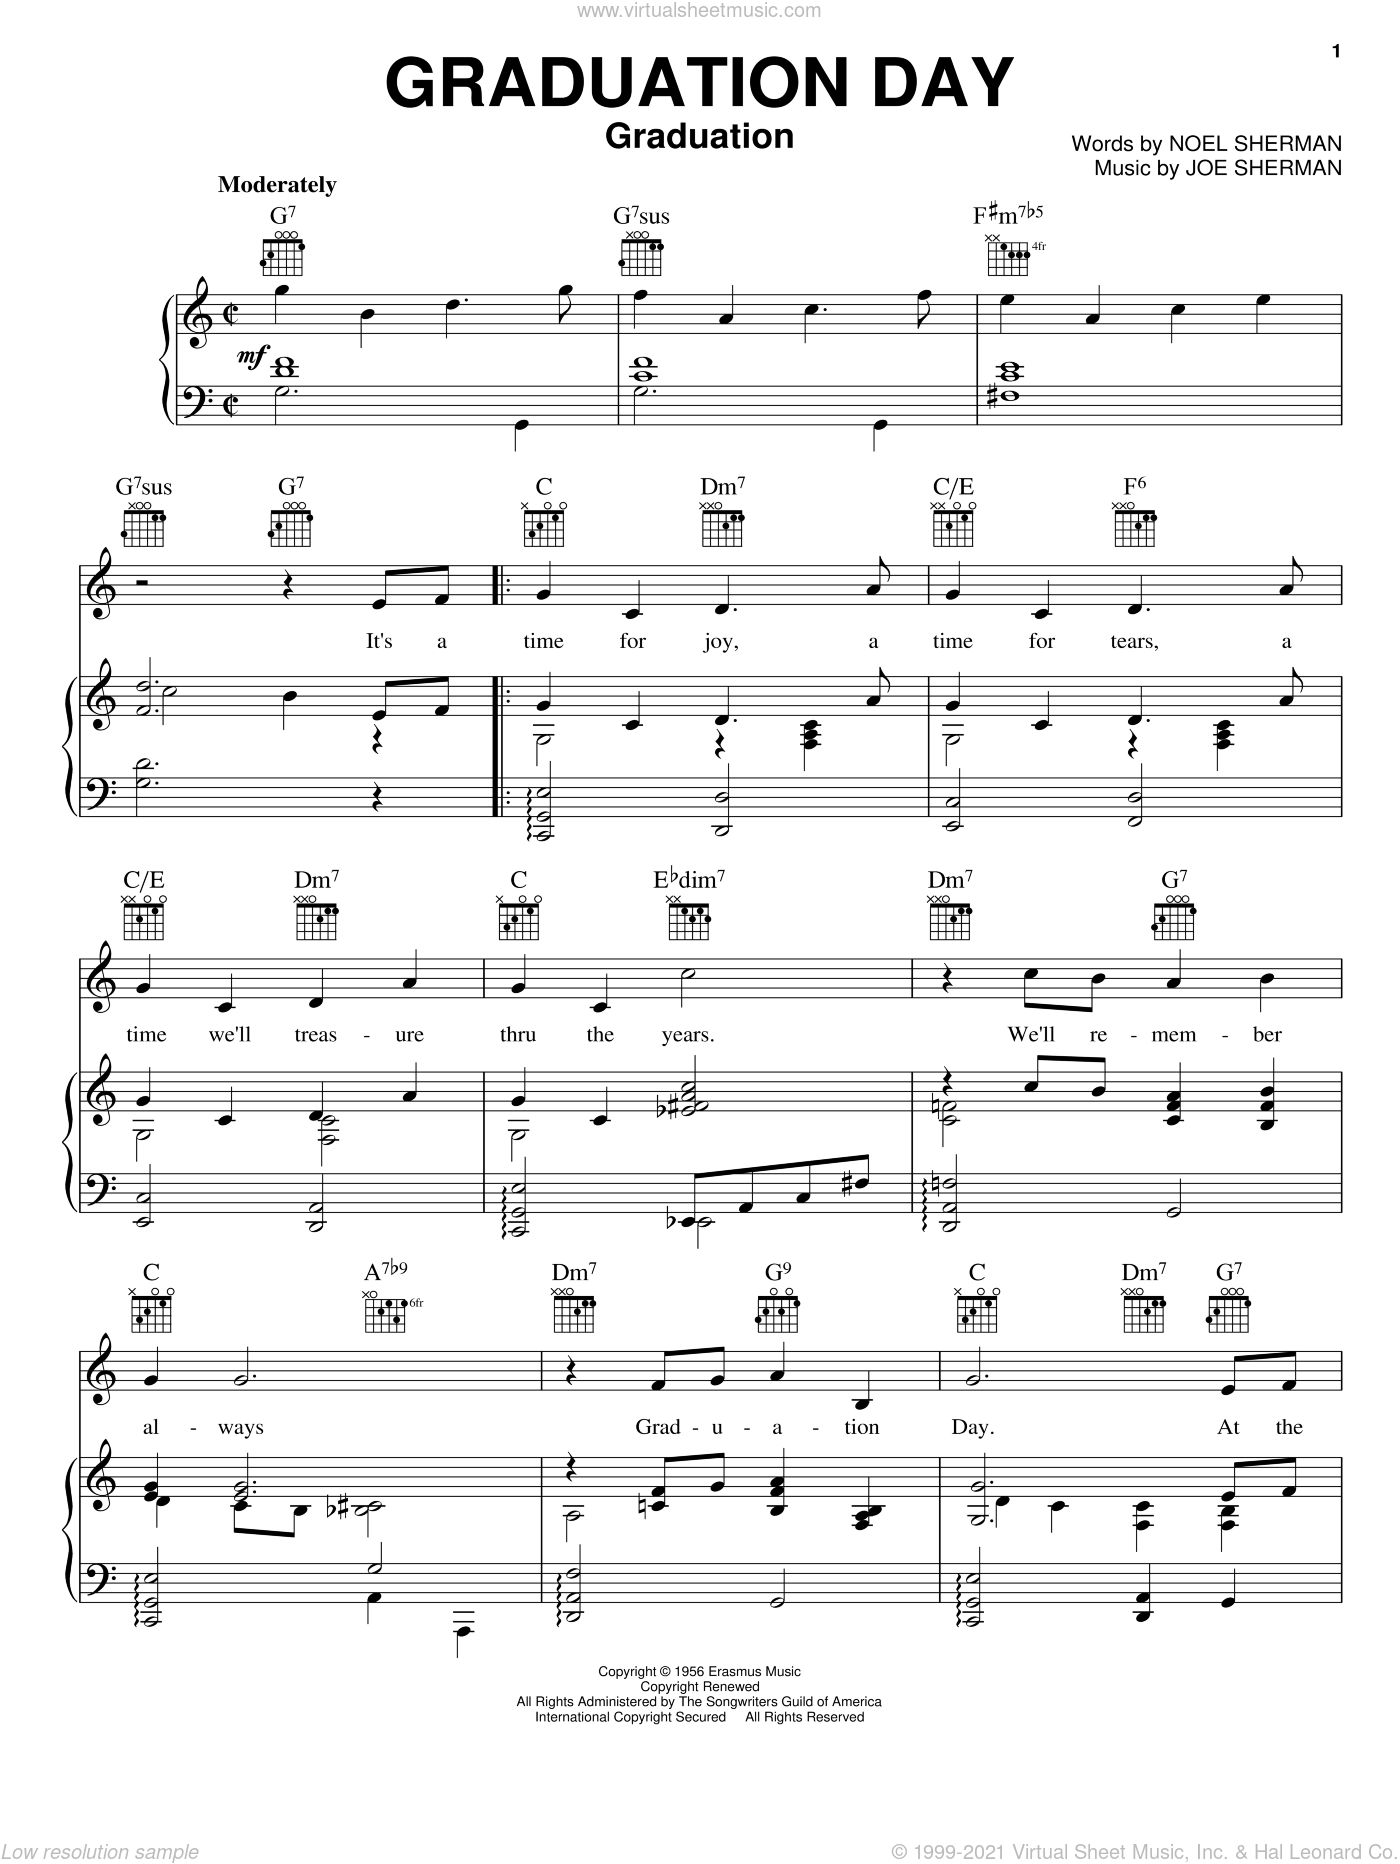 Graduation Day sheet music for voice, piano or guitar by Noel Sherman, The Beach Boys and Joe Sherman. Score Image Preview.